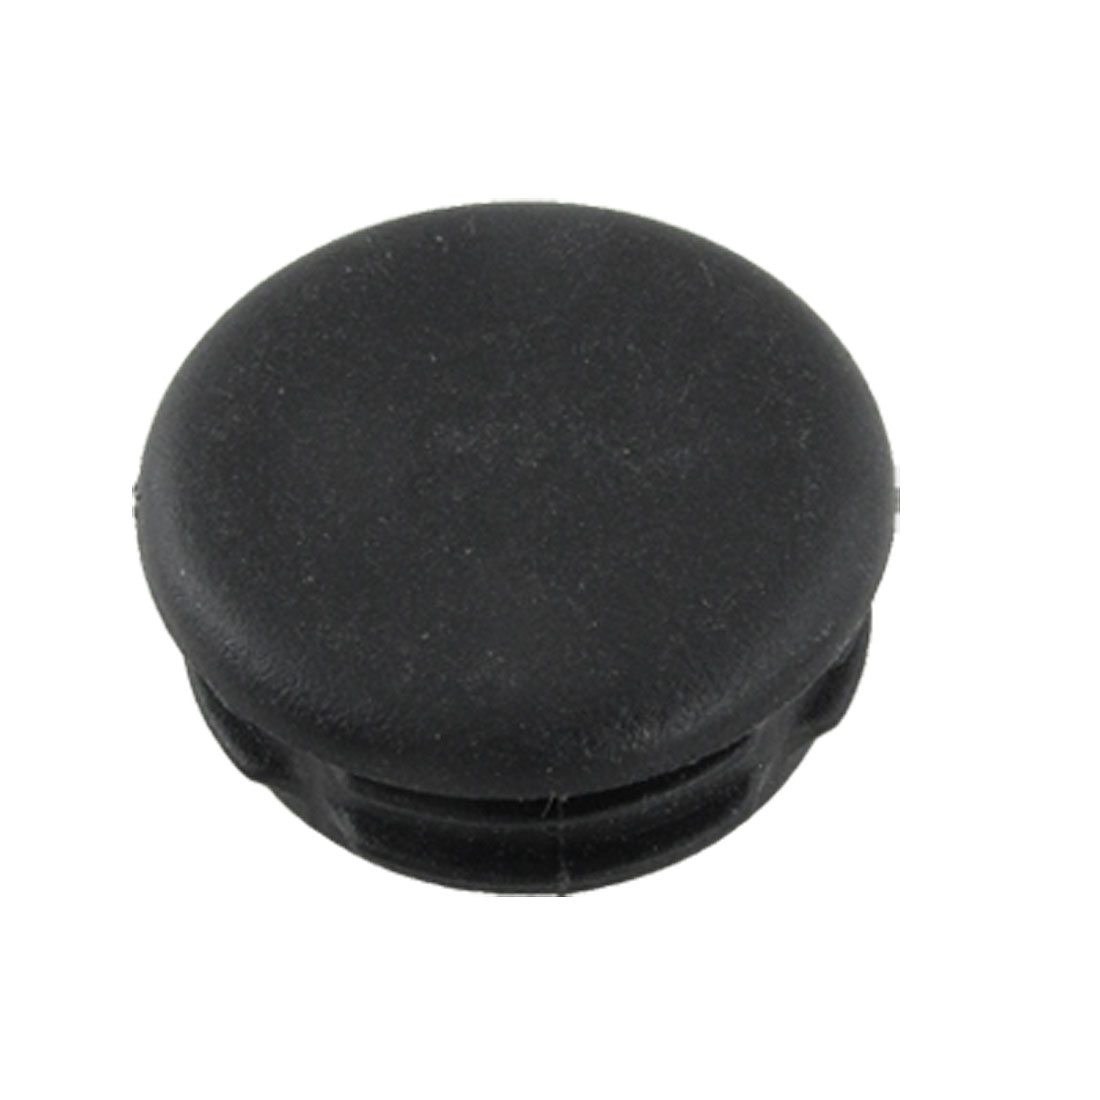 10 Pcs Table Chair Legs Black Plastic 30mm Dia Caps Floor Protectors